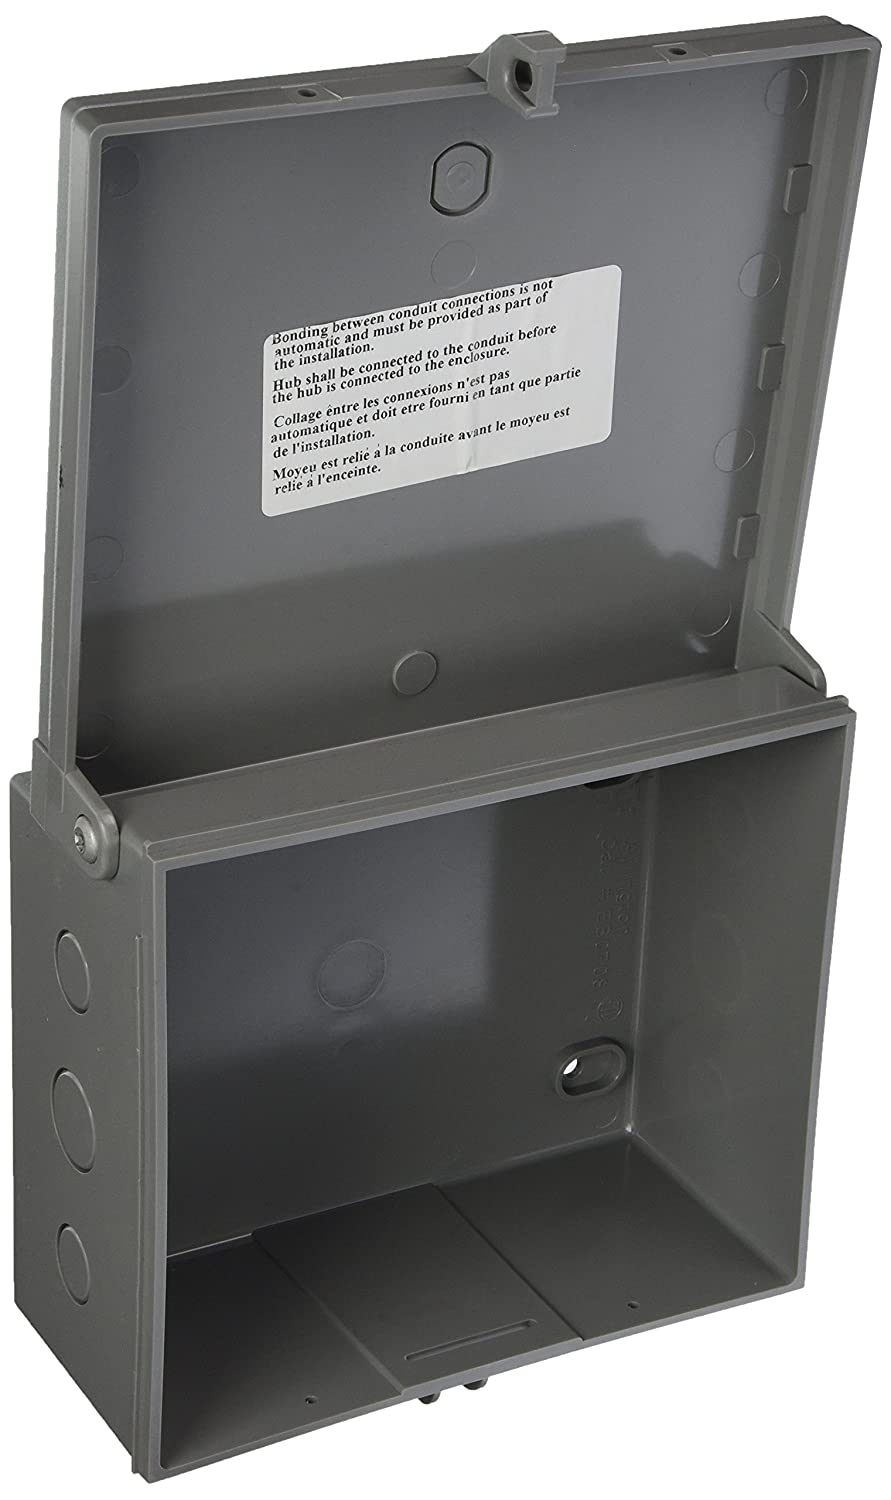 Arlington Eb1212 1 Electronic Equipment Enclosure Box 12 X 4 Heavy Duty Relay Contactor In A Lockable Metal Structured Wiring Panel Non Metallic Pack Switch And Outlet Plates